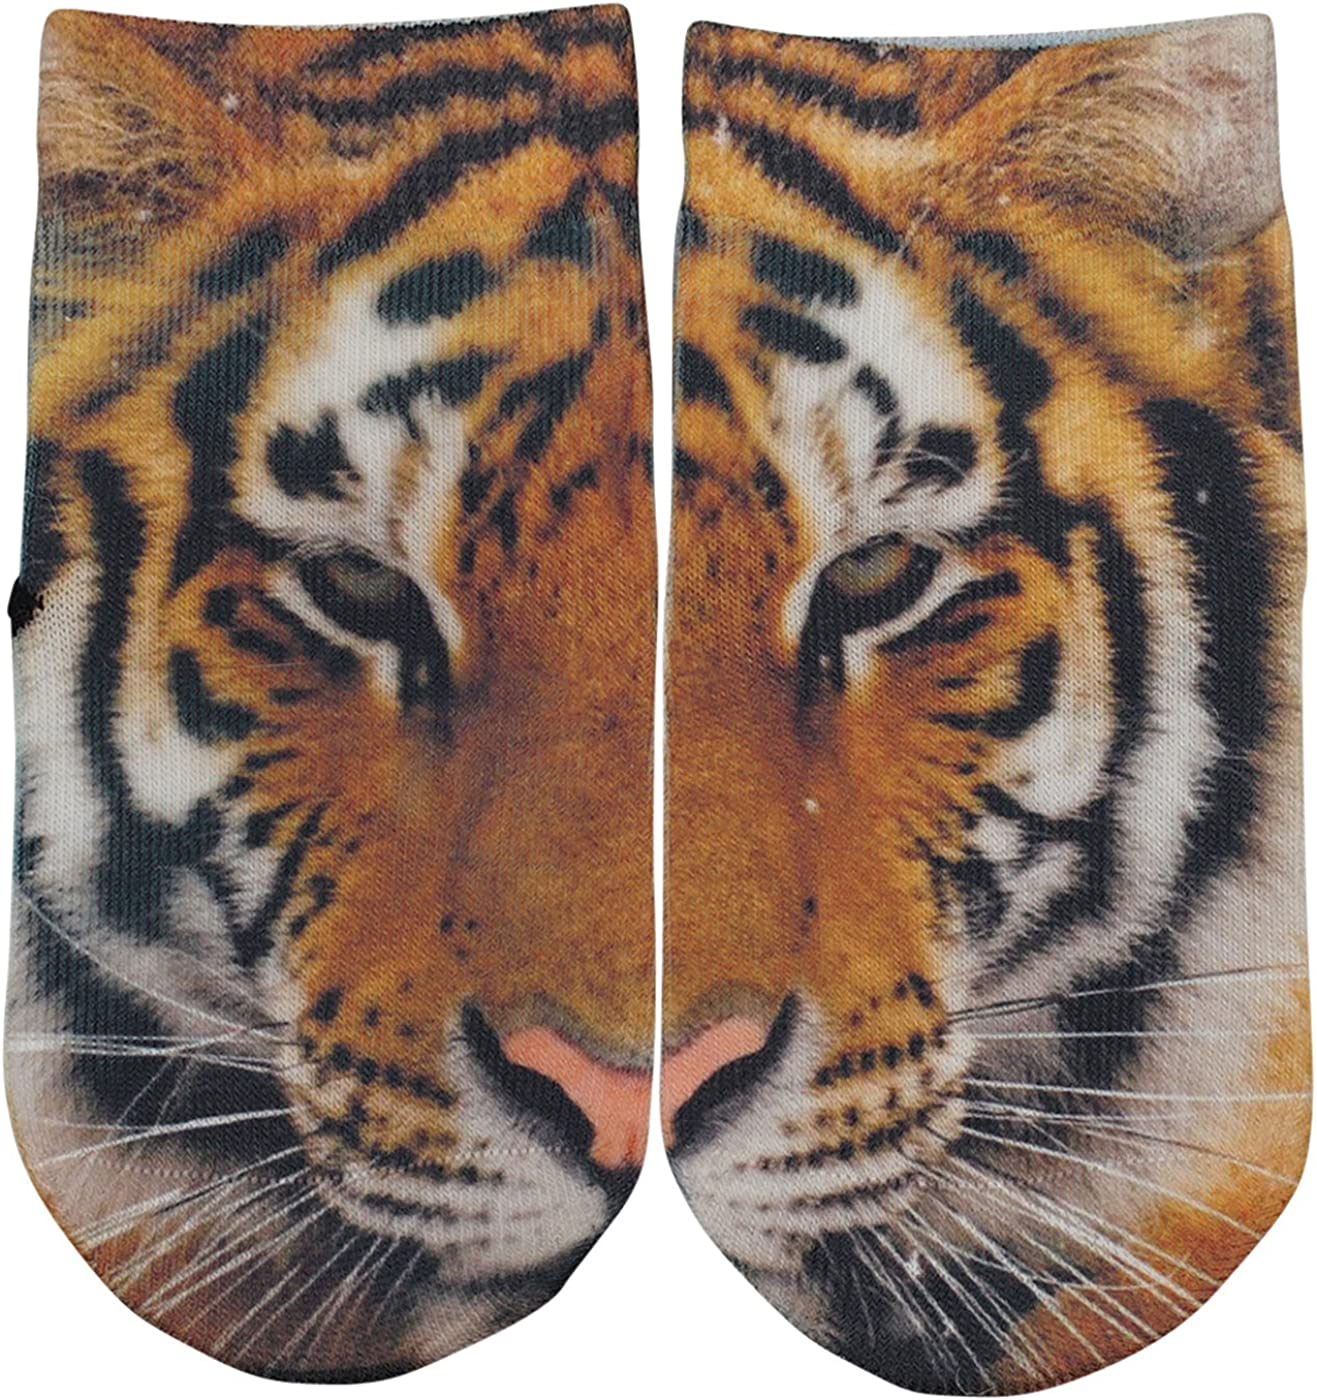 Amazon Com Unique Baby Socks Tiger Face Cute Infant No Slip Gripper Socks Unique Baby Boy Gift Baby Girl Socks For Newborn Babies Clothing